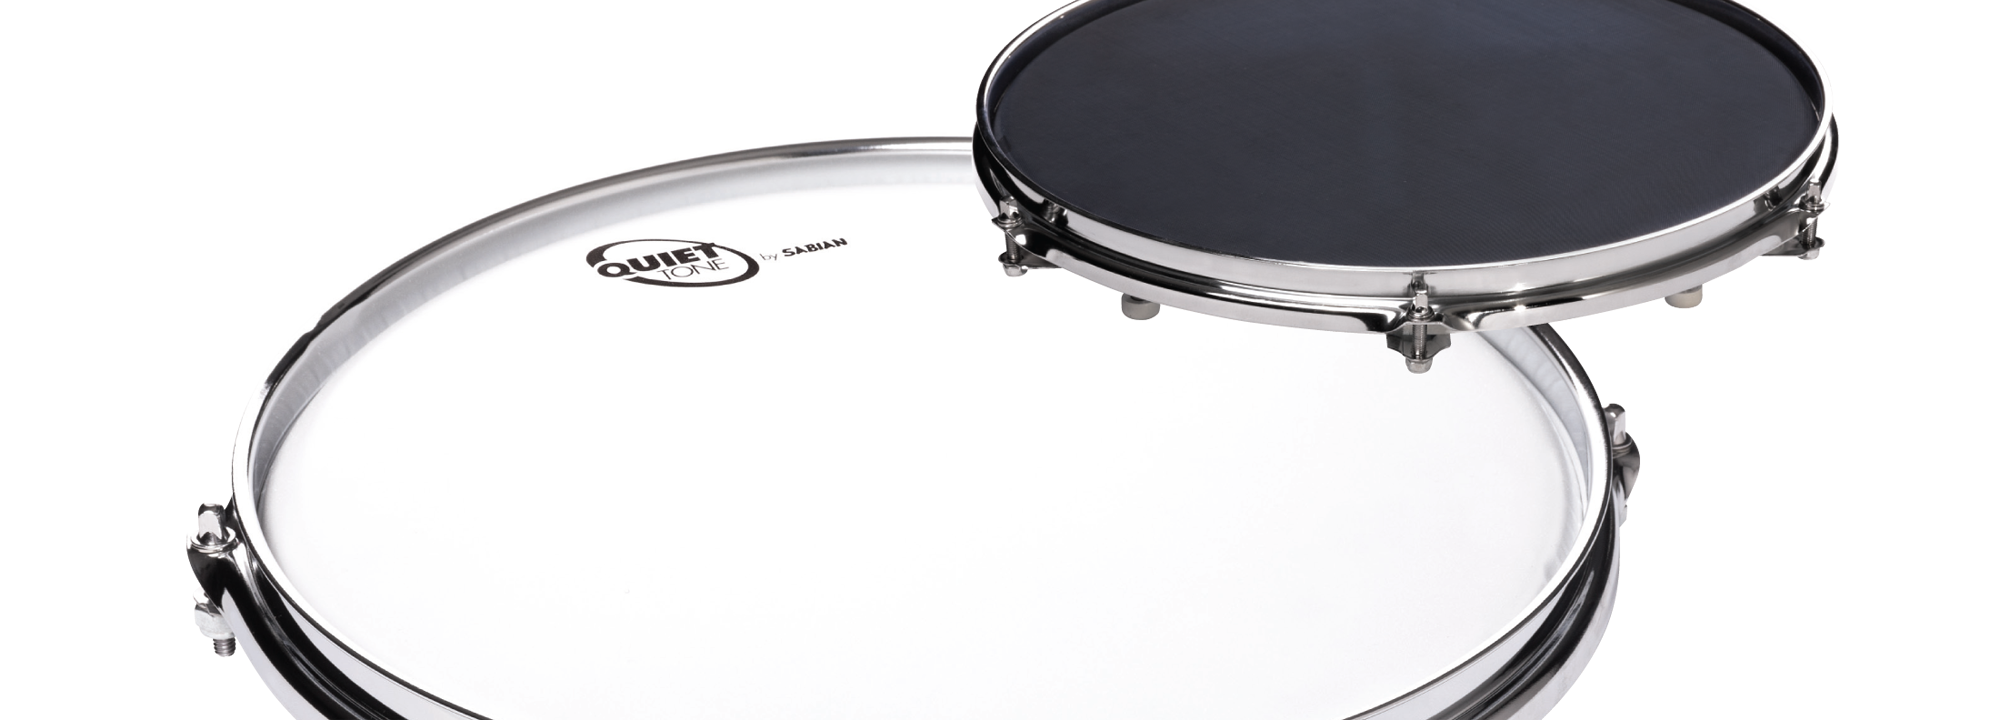 Quiet Tone Practice Pads By Sabian